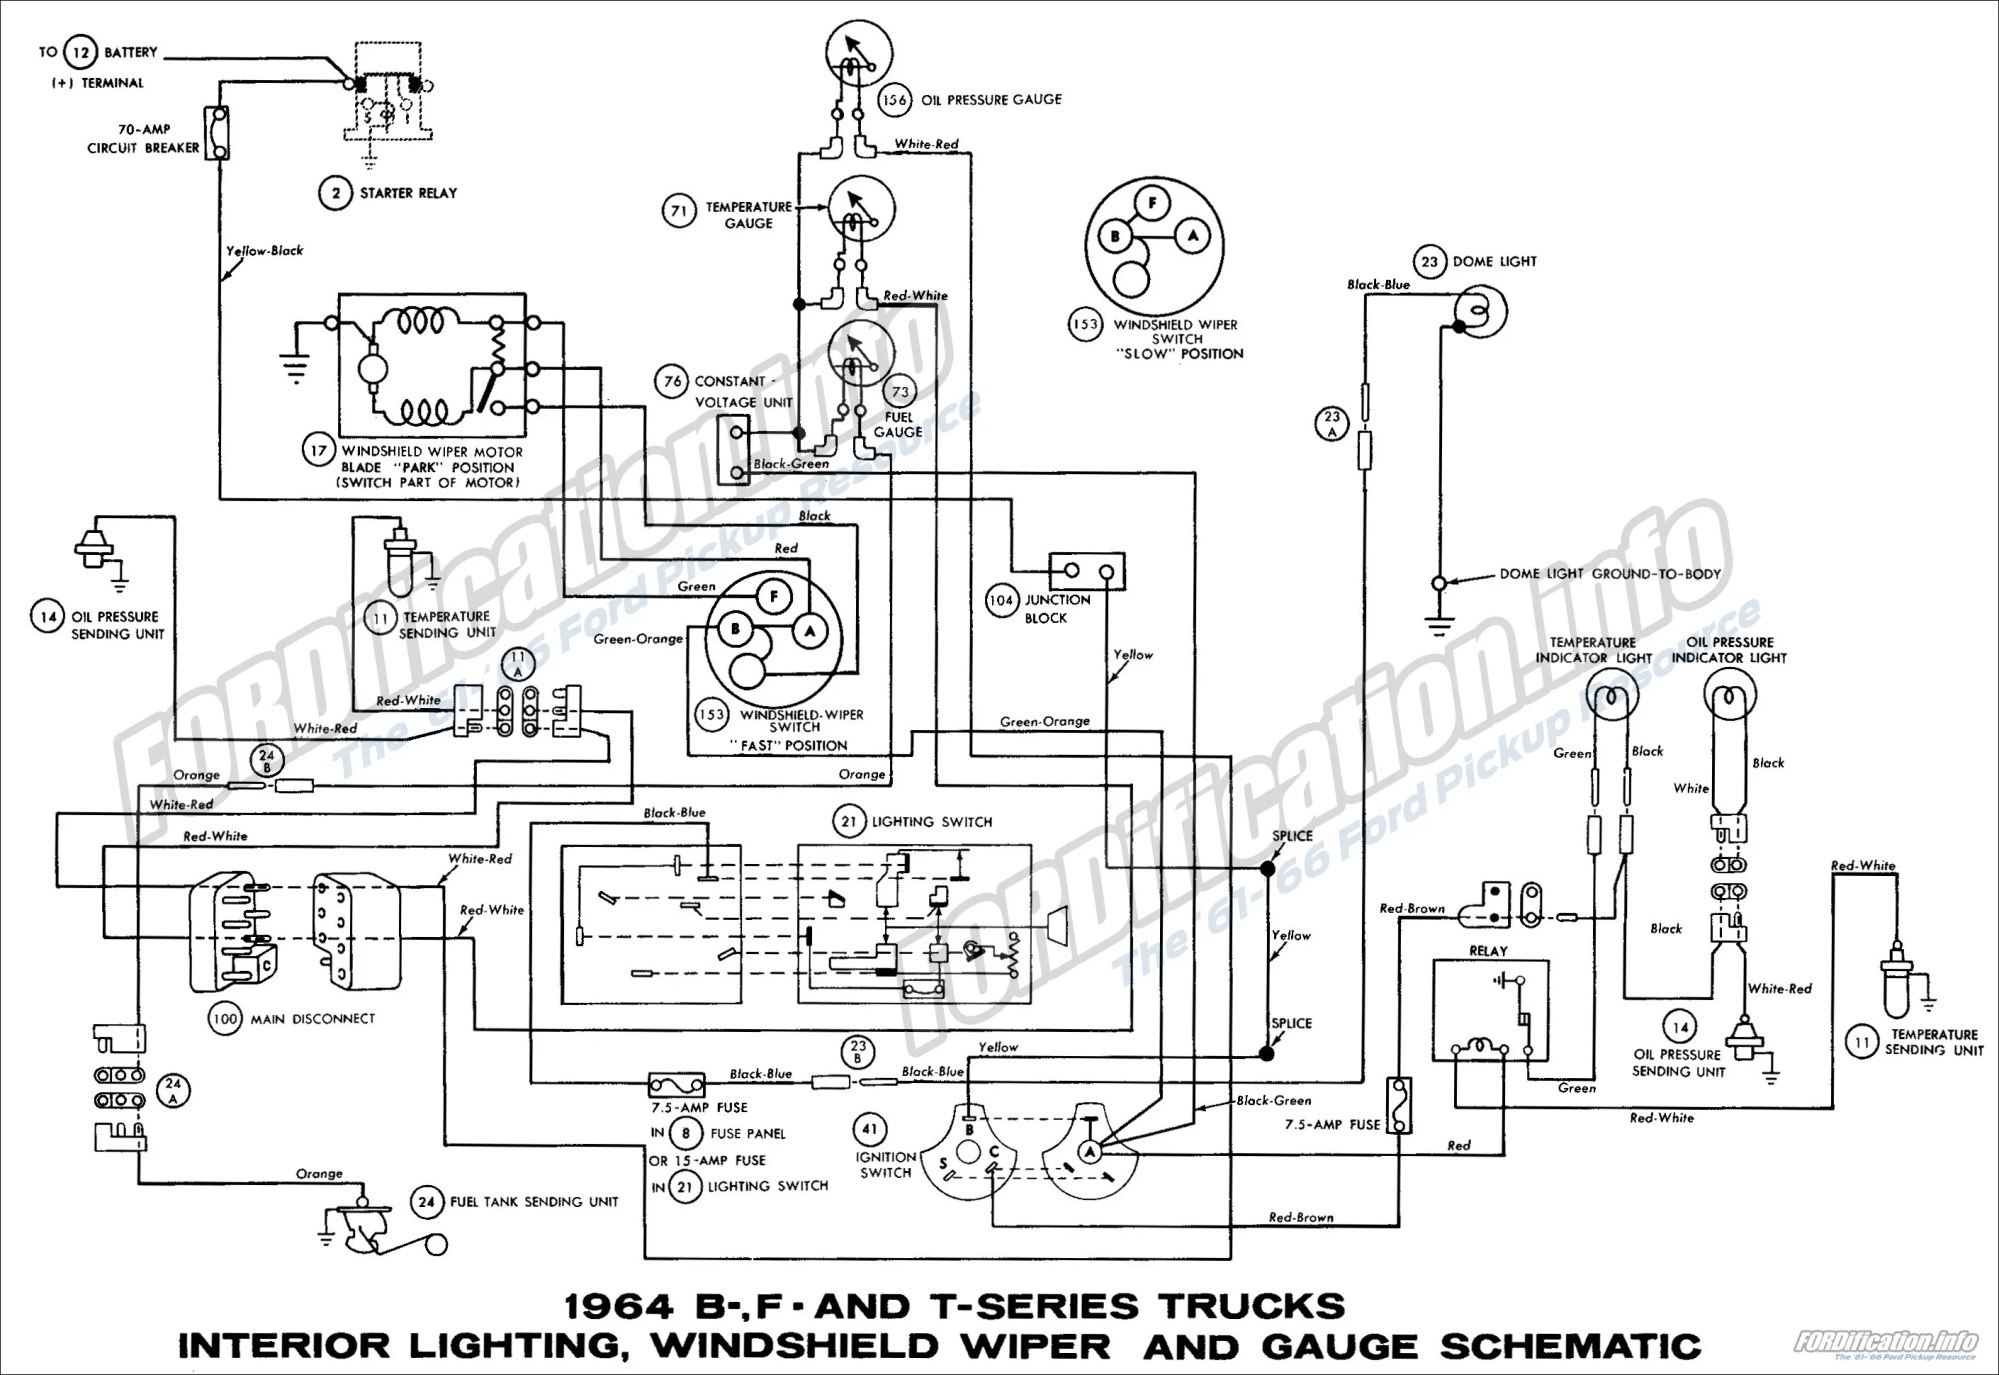 hight resolution of 1964 ford truck wiring diagram on 65 mustang lights wiring diagram 1964 ford wiring wiring diagram